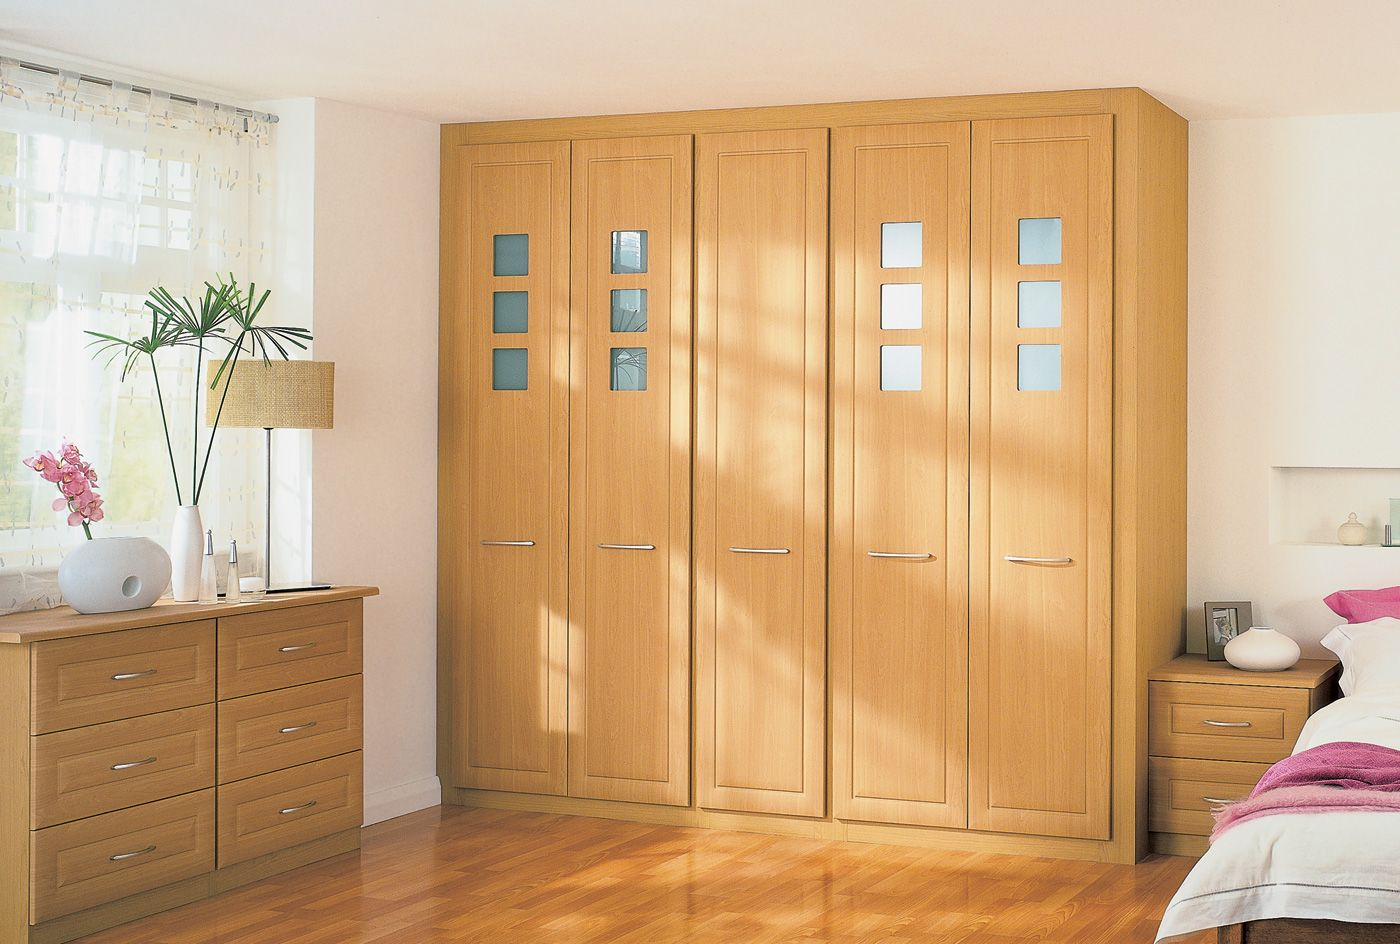 fitted wardrobes from the madrid bedroom furniture range http